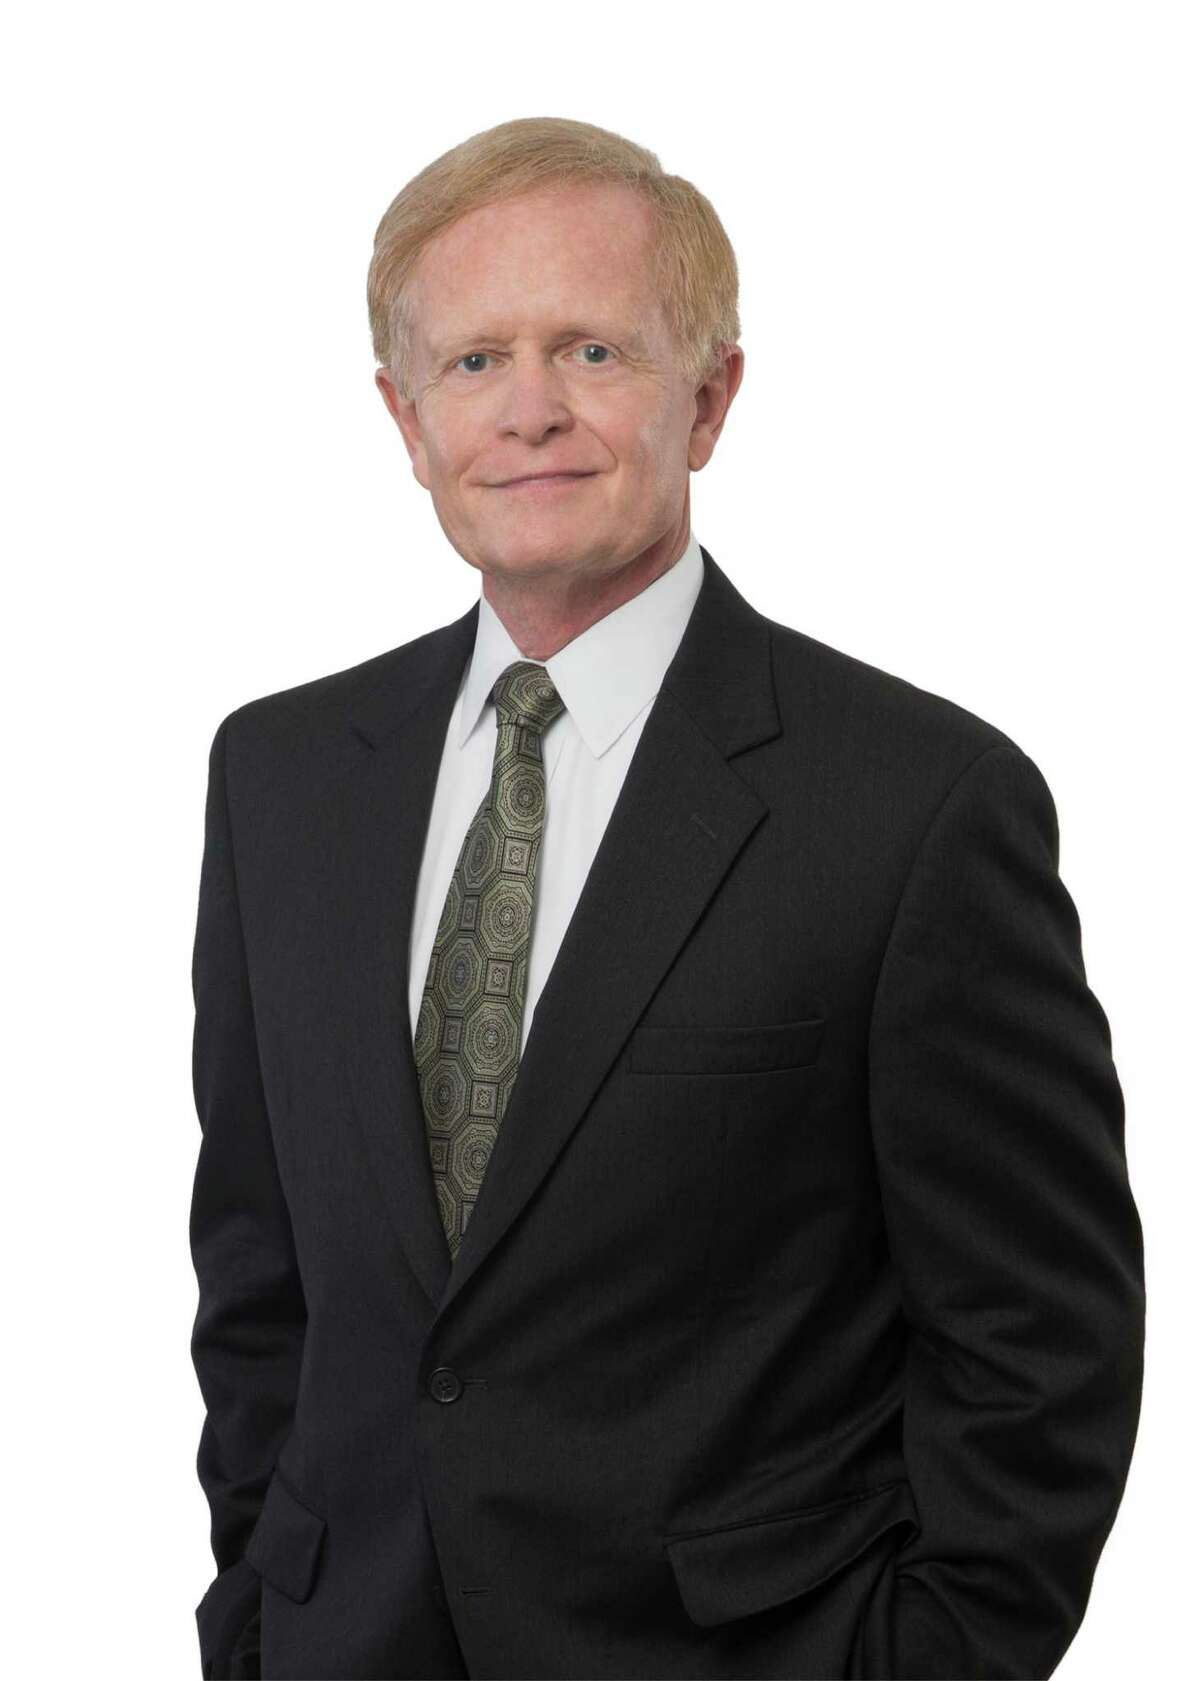 Harvey Heller has joined Coats Rose as of counsel in the firm's real estate practice group.